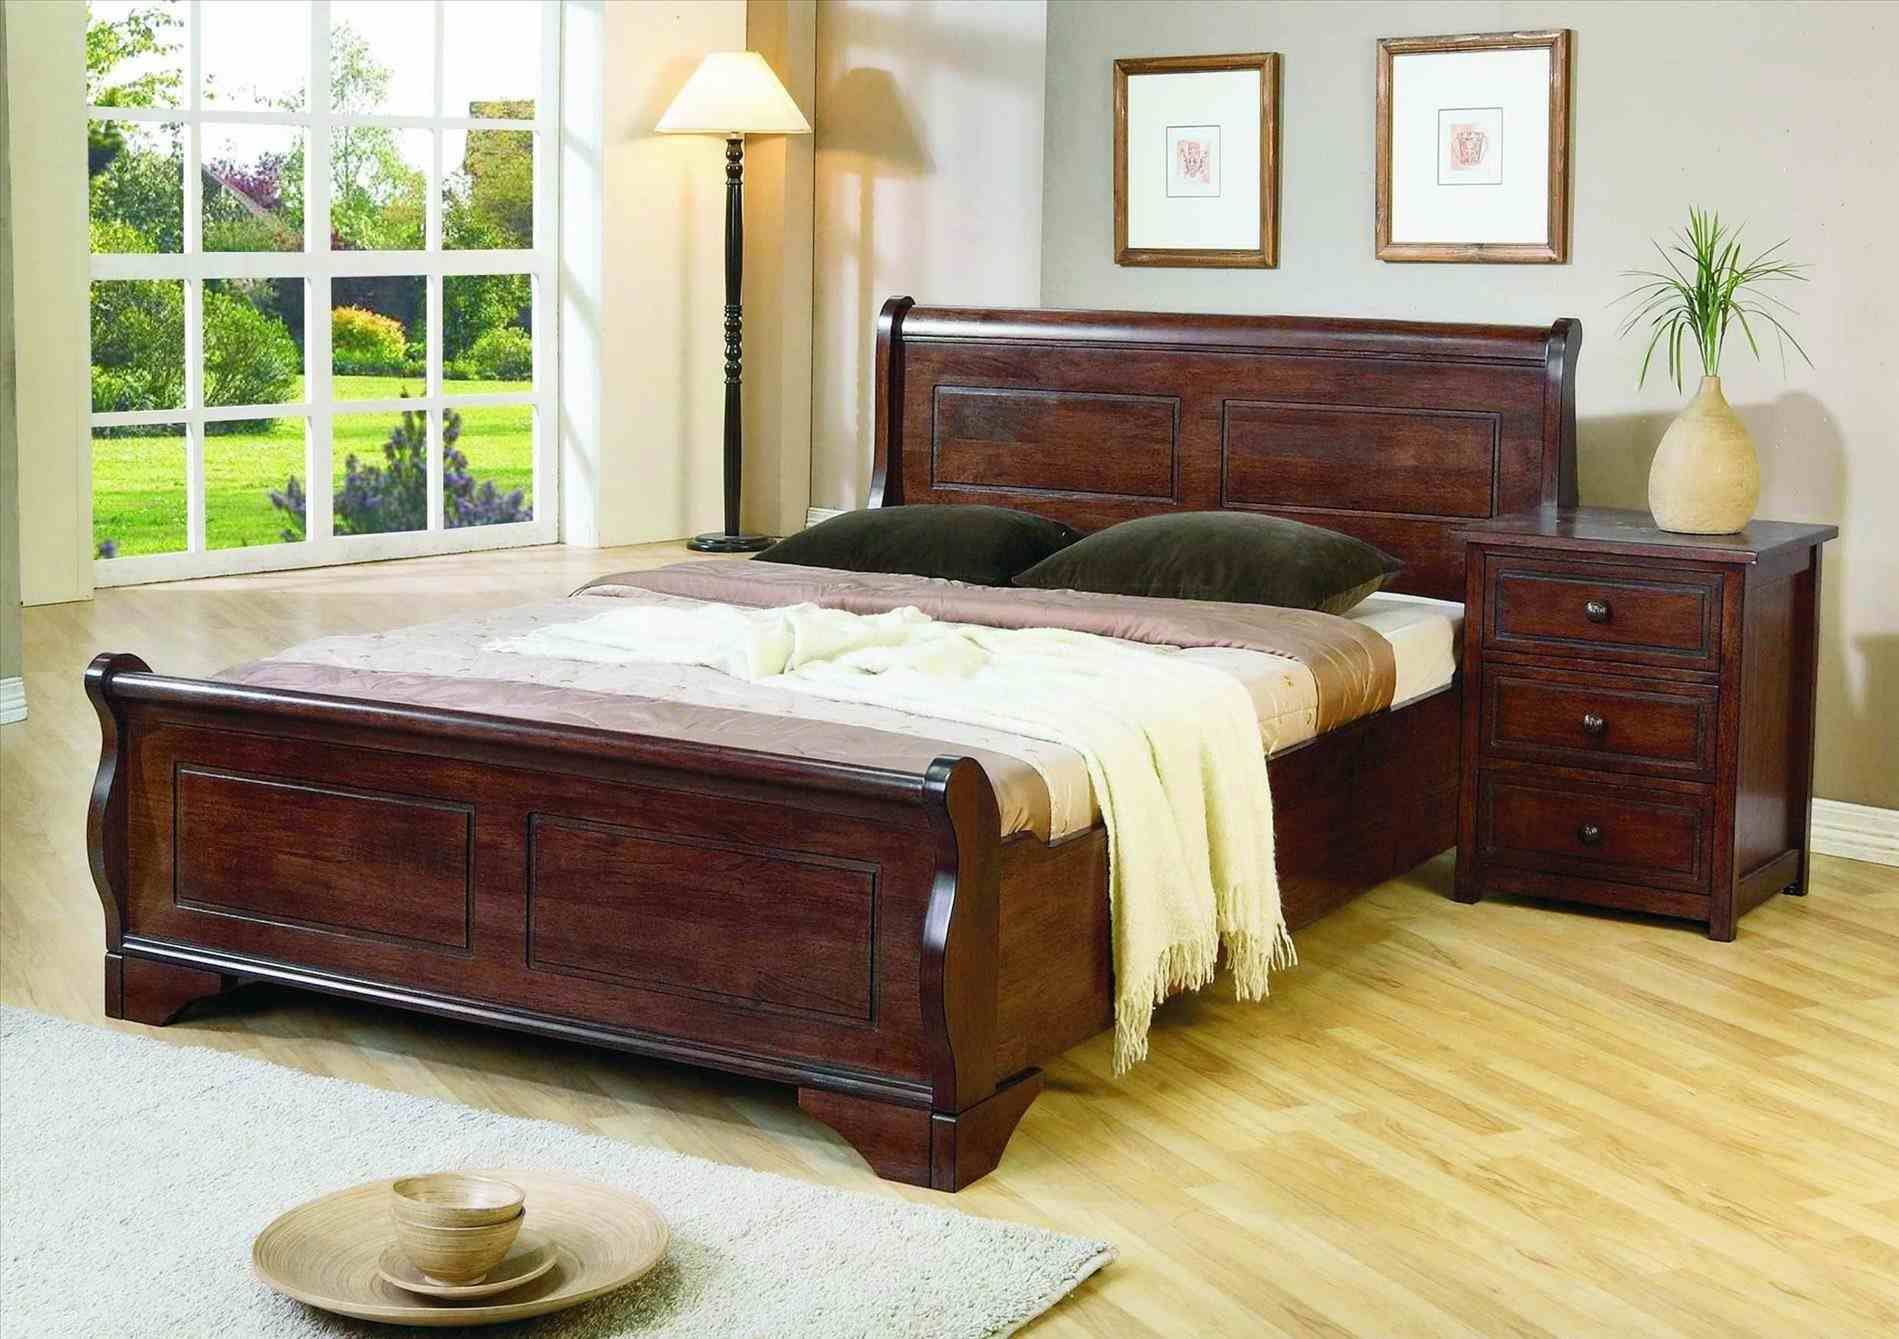 New Post Simple Wooden Bedroom Furniture Designs 2015 Visit Bobayule Trending Decors Mahogany Bed Wooden Bed Design Bed Design